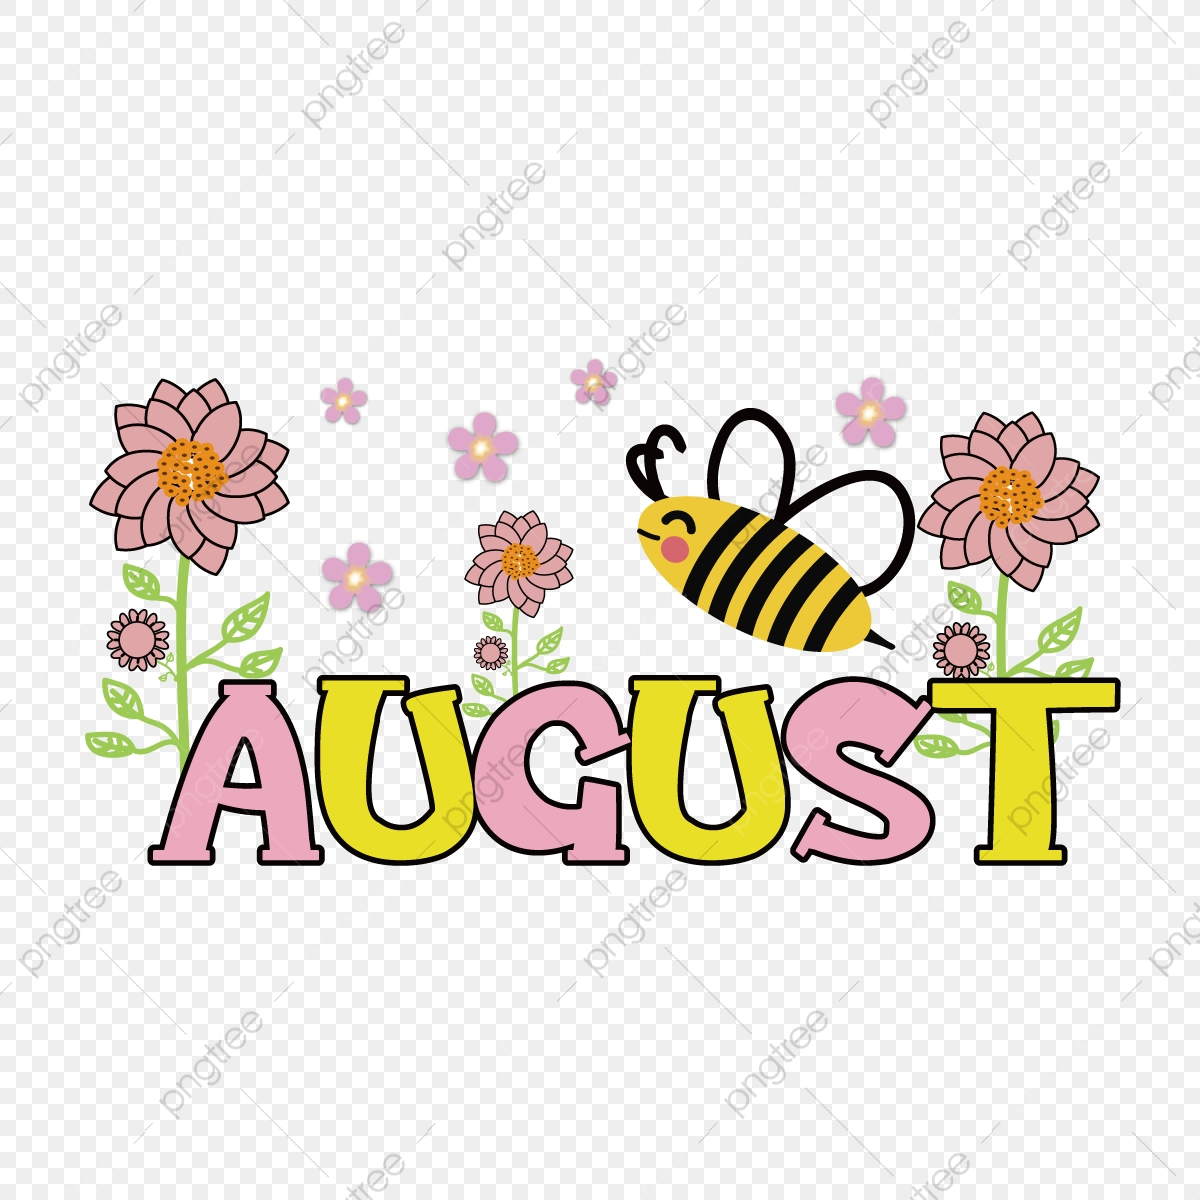 August Cartoon Clip Art Svg August Cartoon Clipart Png And Vector With Transparent Background For Free Download